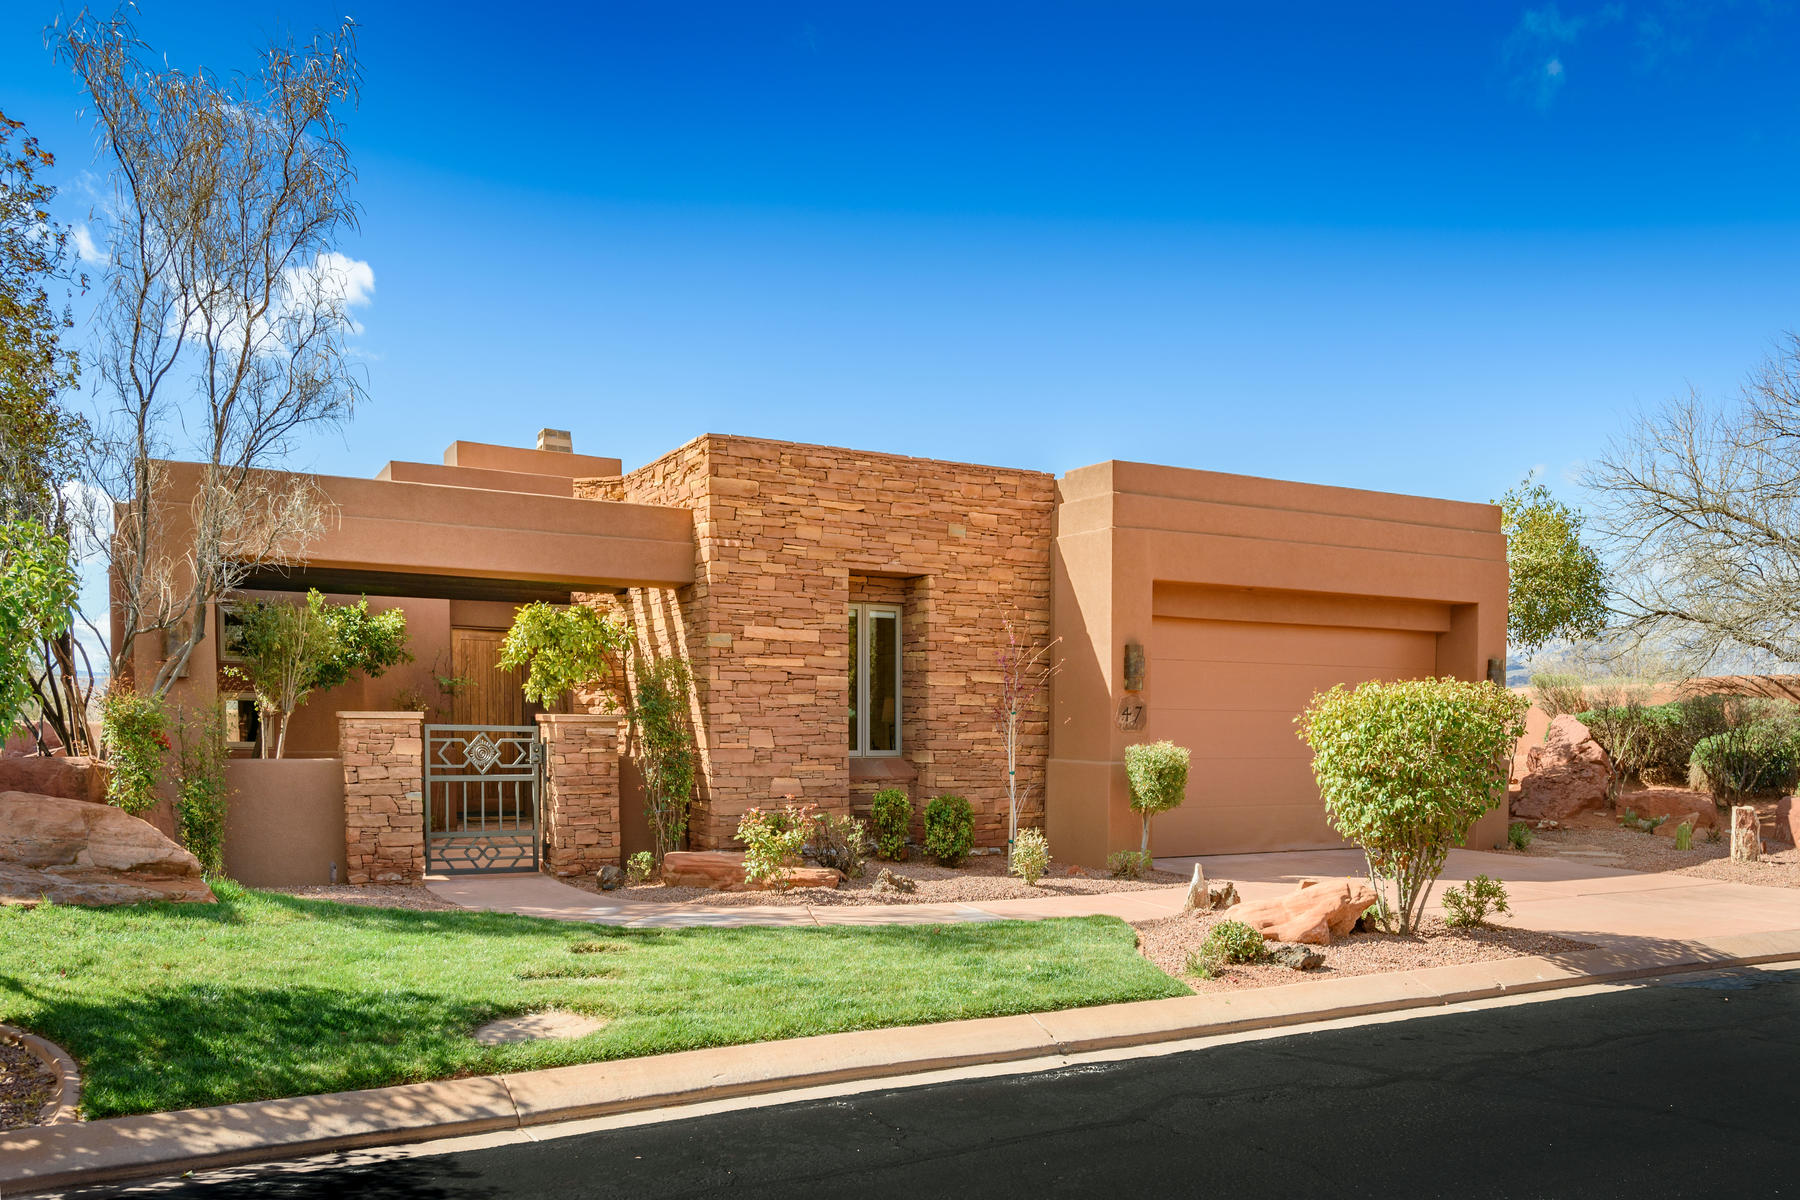 Single Family Homes for Sale at Own Your Own Retreat In Entrada 2410 W Entrada Trail #47 St. George, Utah 84770 United States